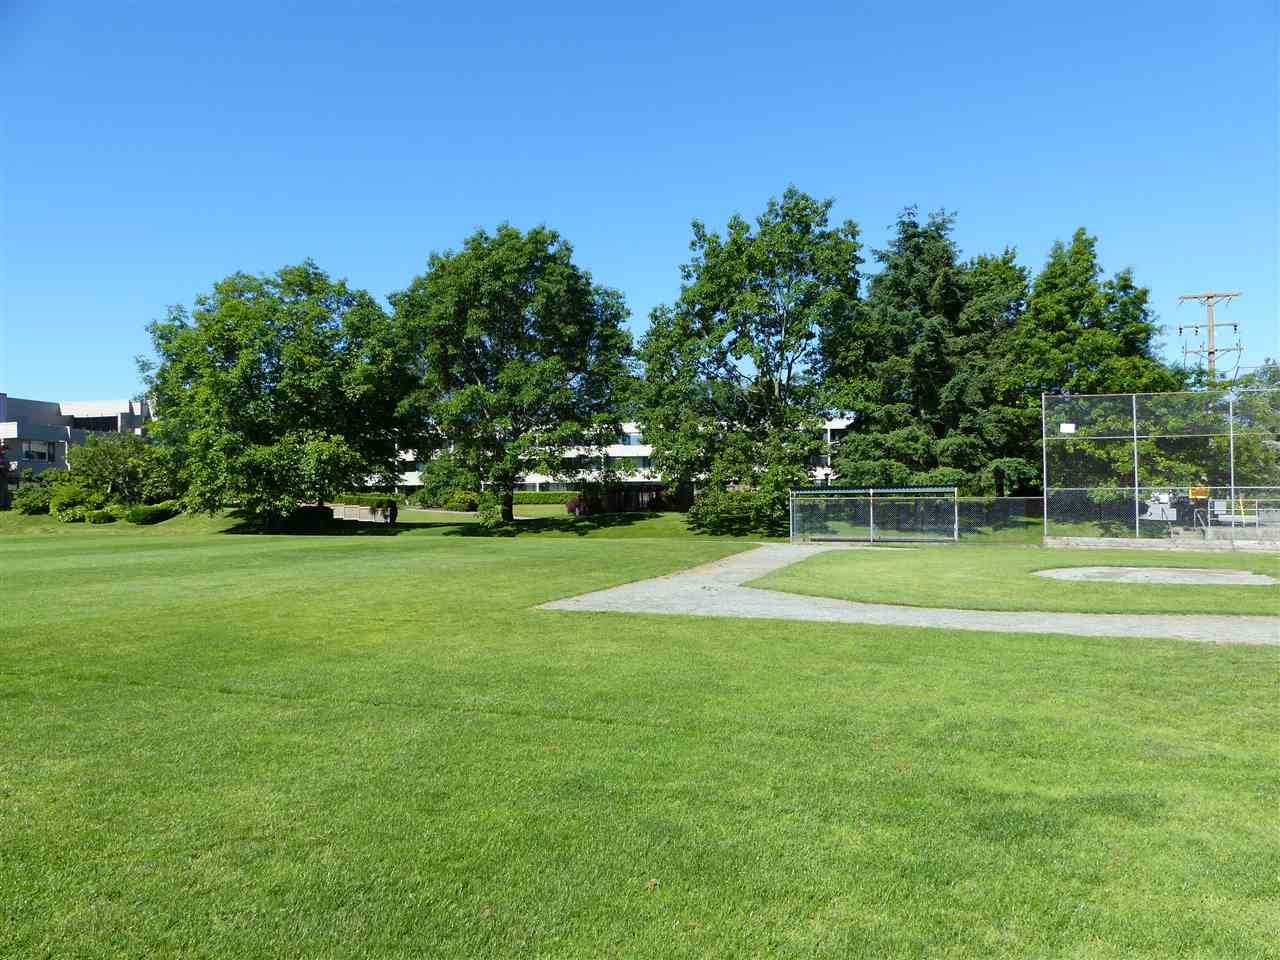 Beside - Bakerview Sports Field